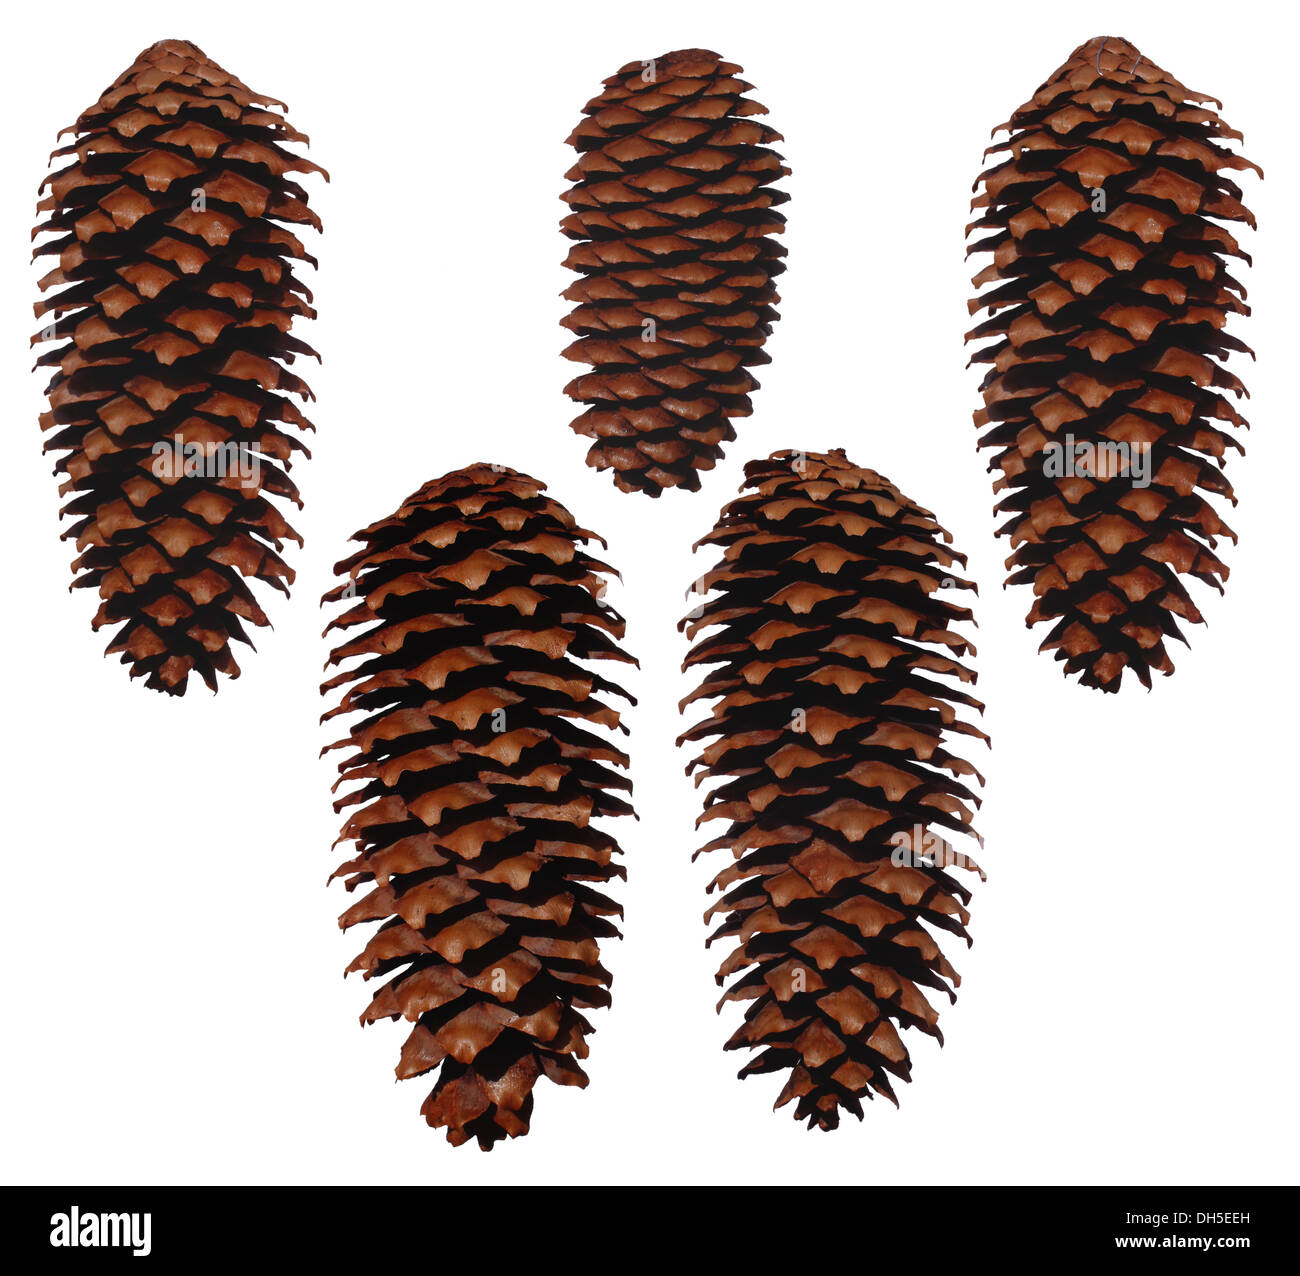 Five pinecones from Spruces - Stock Image